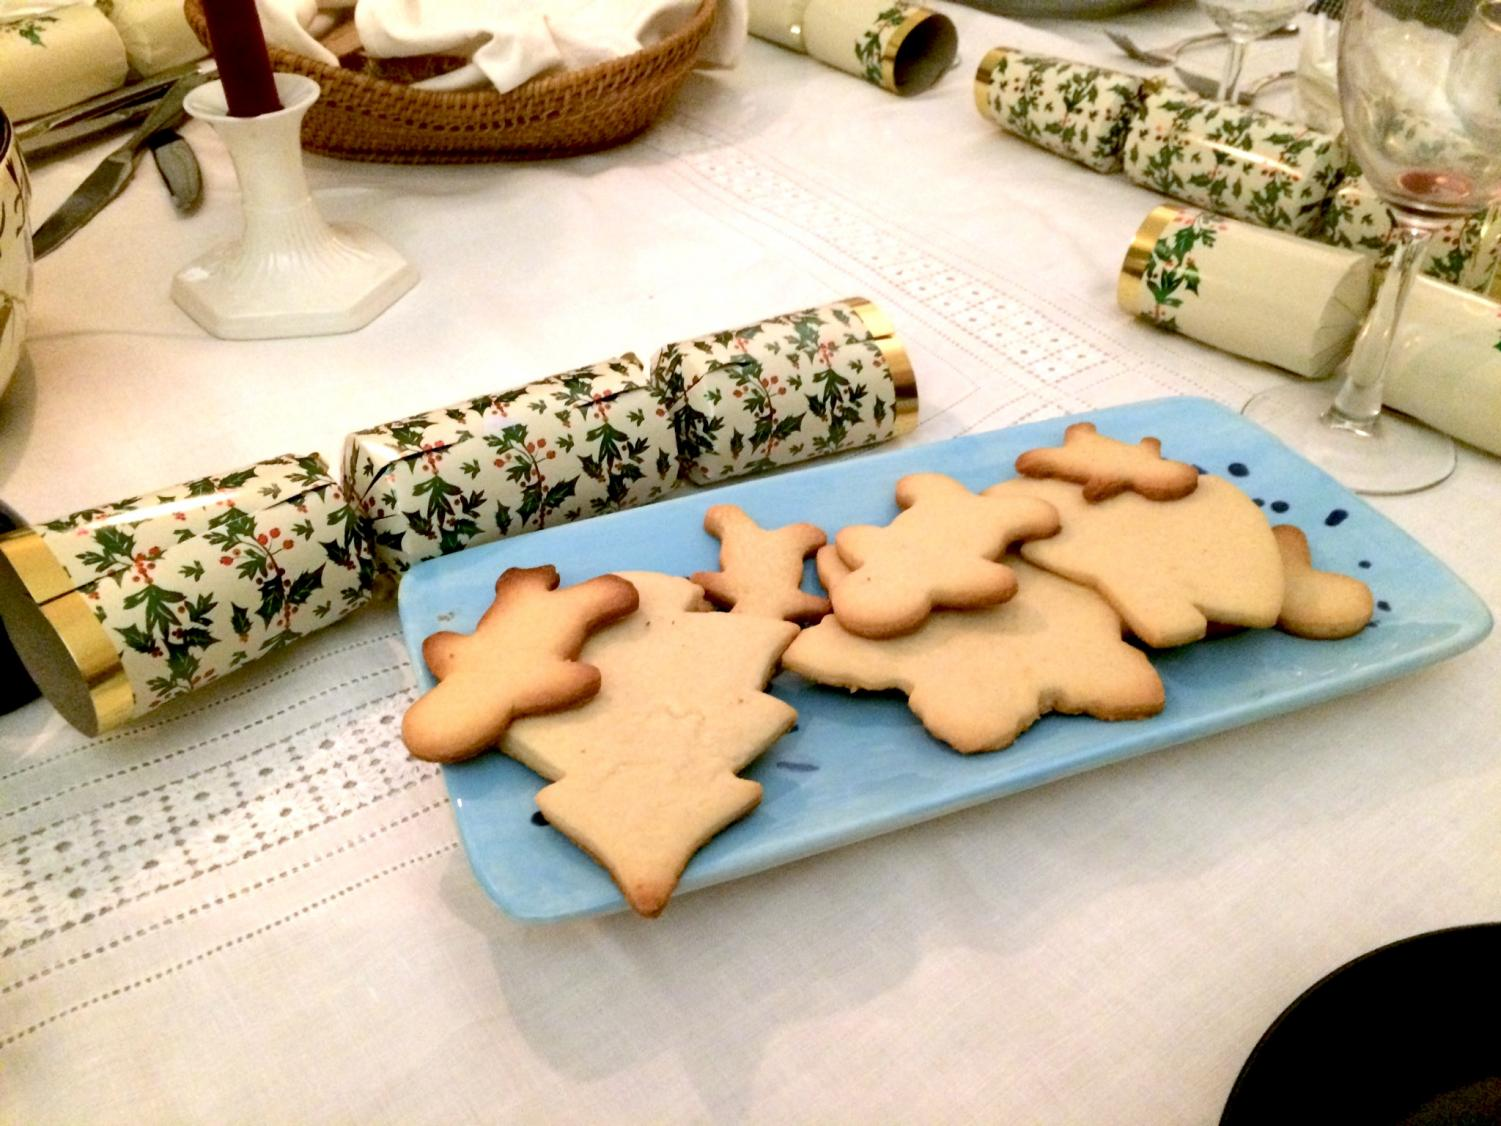 These cookies can be made for any occasion.